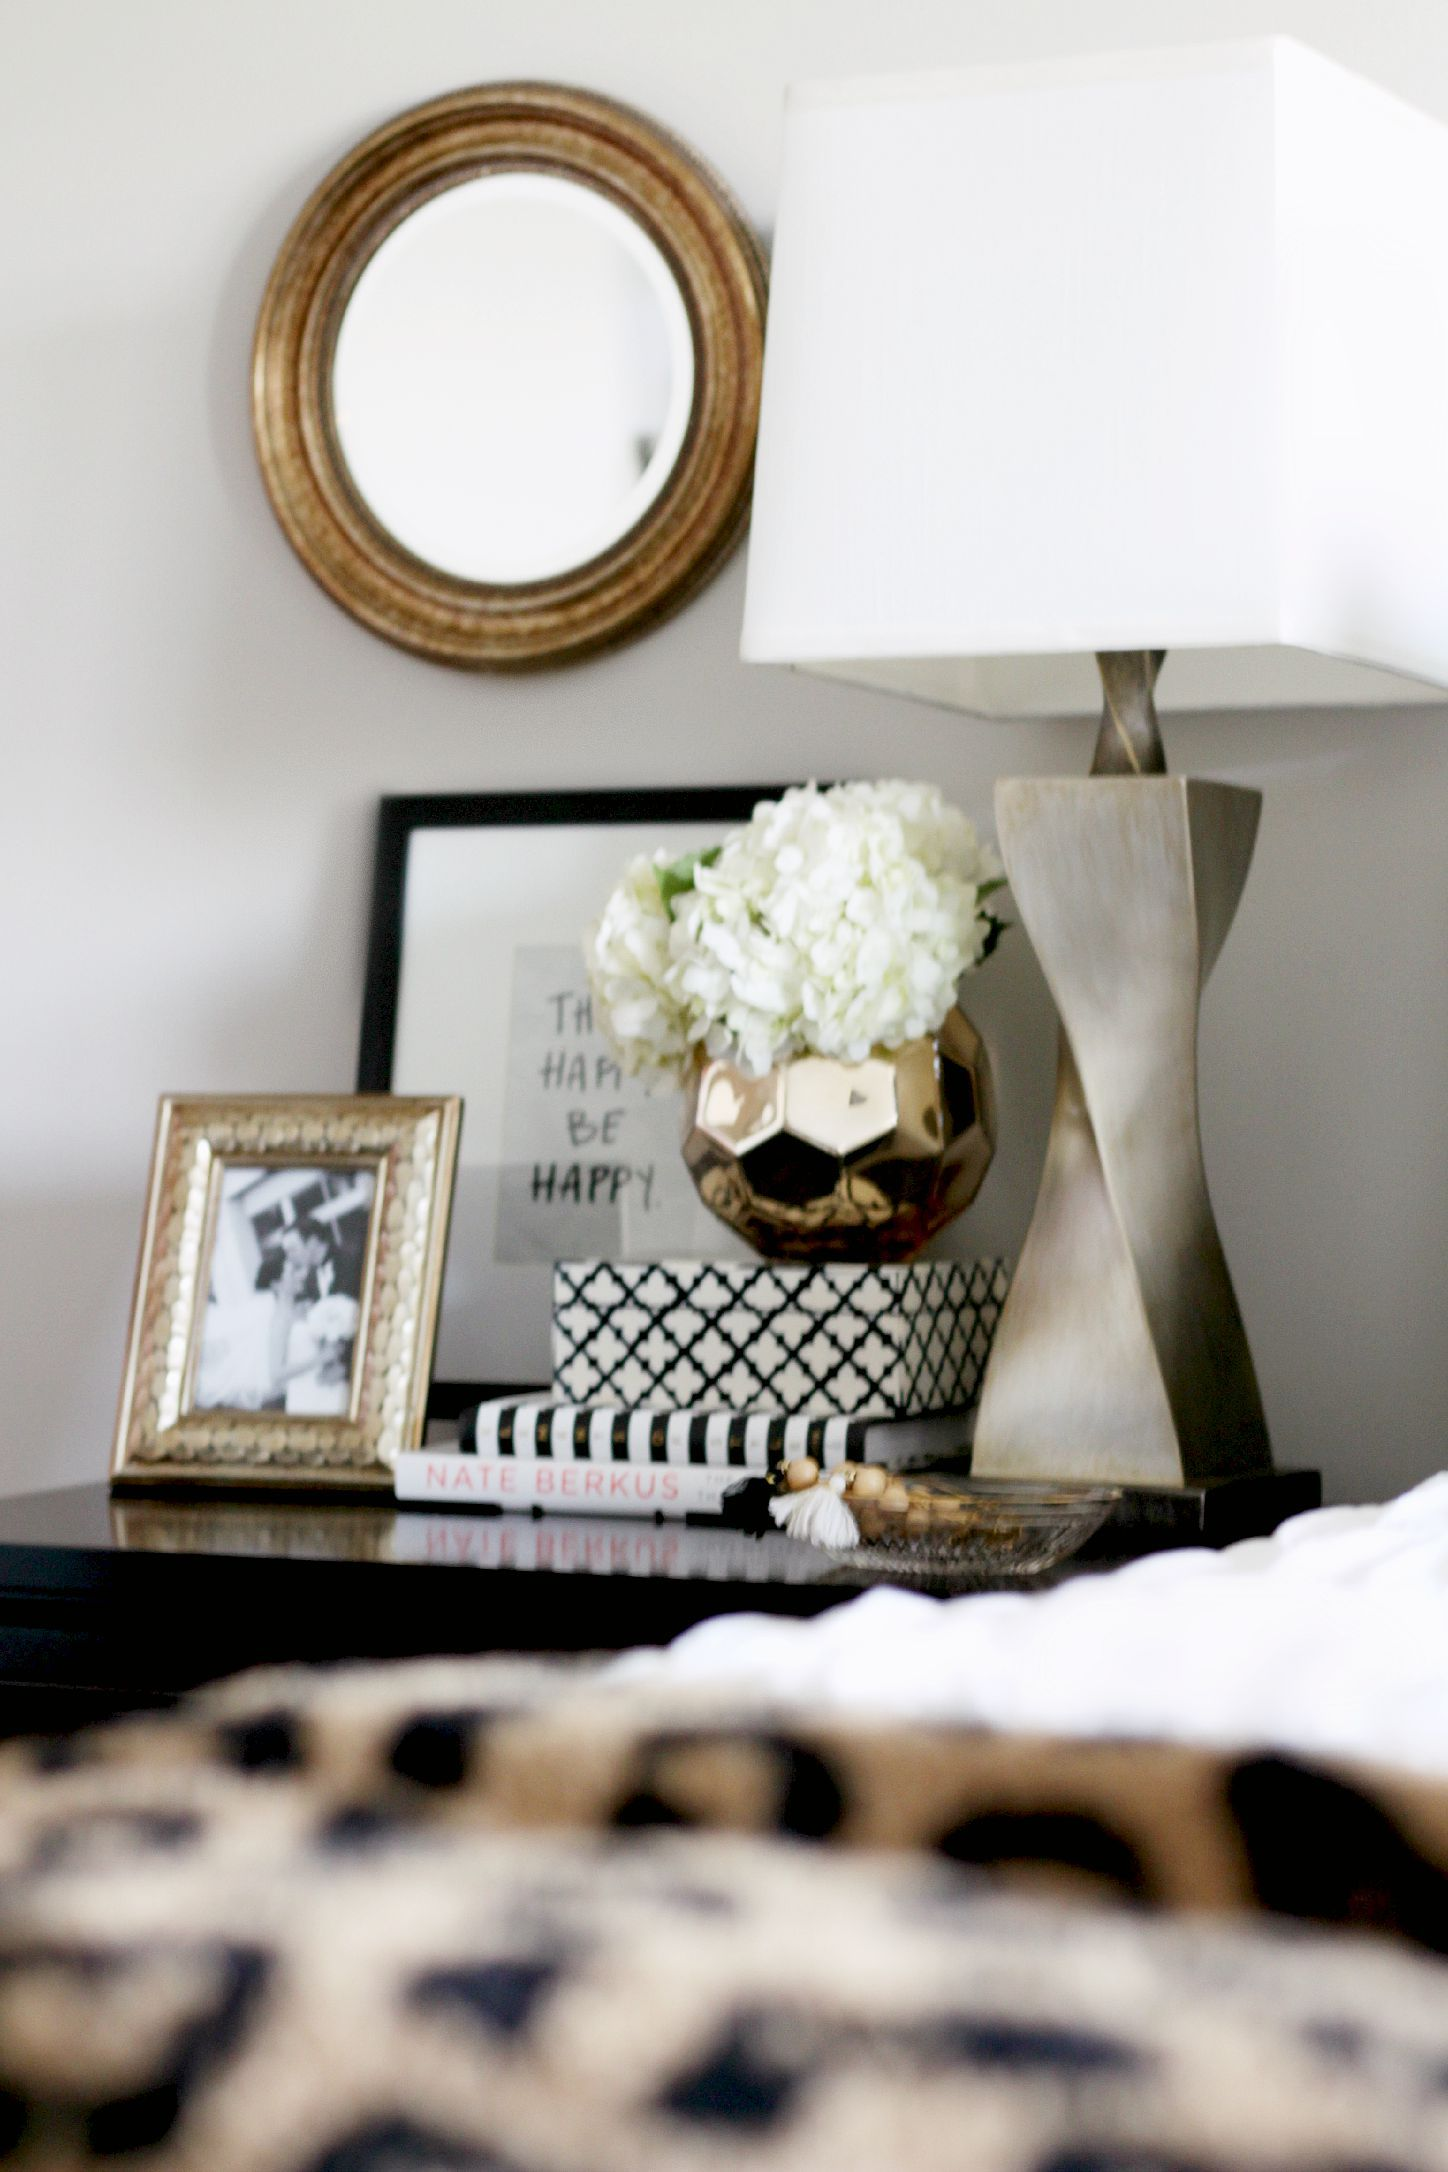 Style your bedroom nightstand decor ideas in a chic way